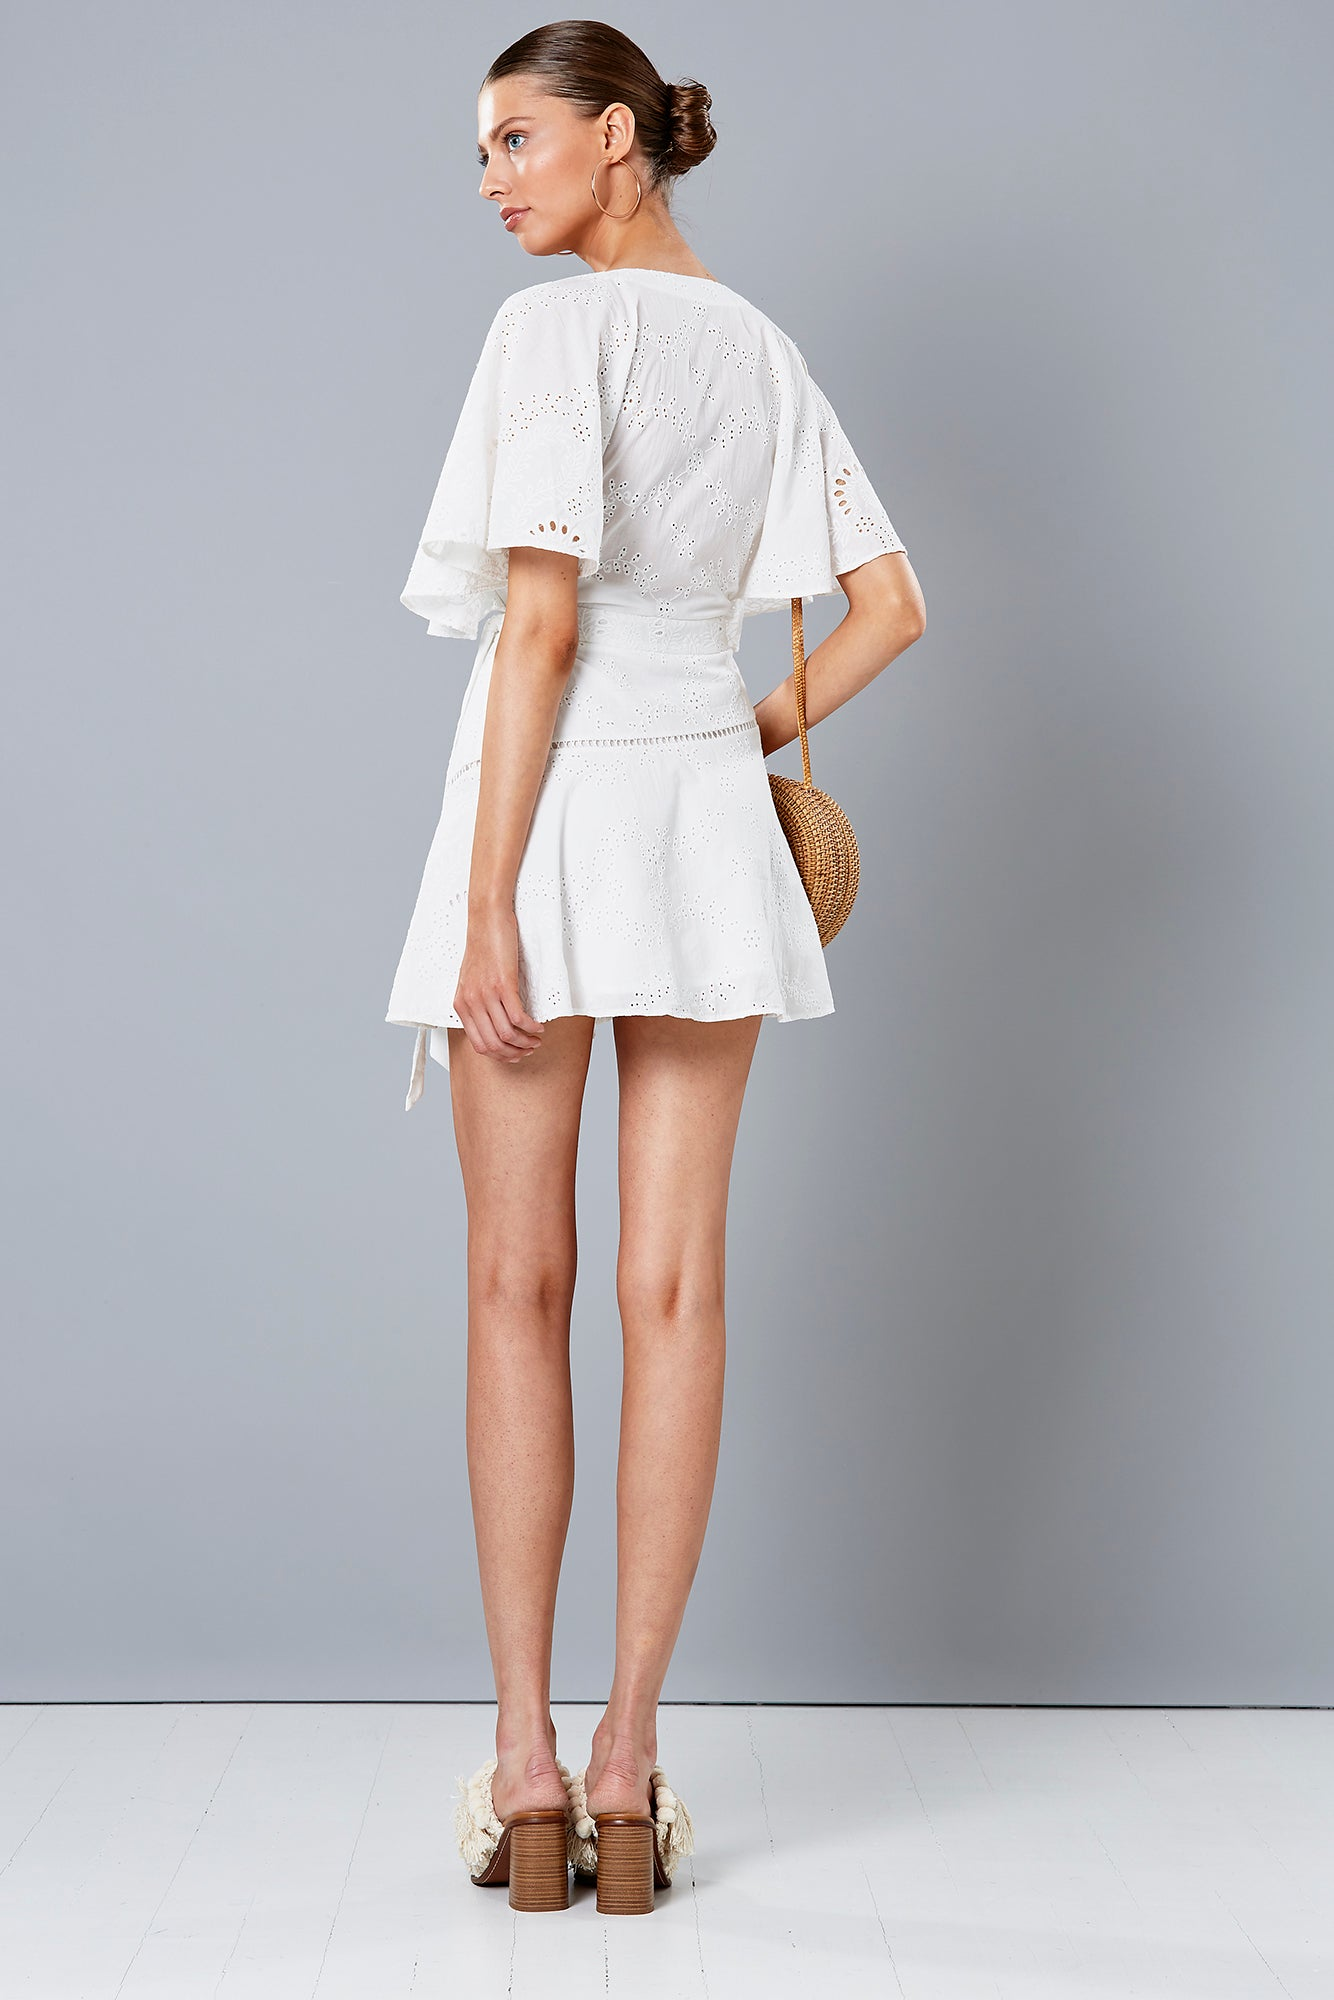 PRIMROSE WING DRESS WHITE